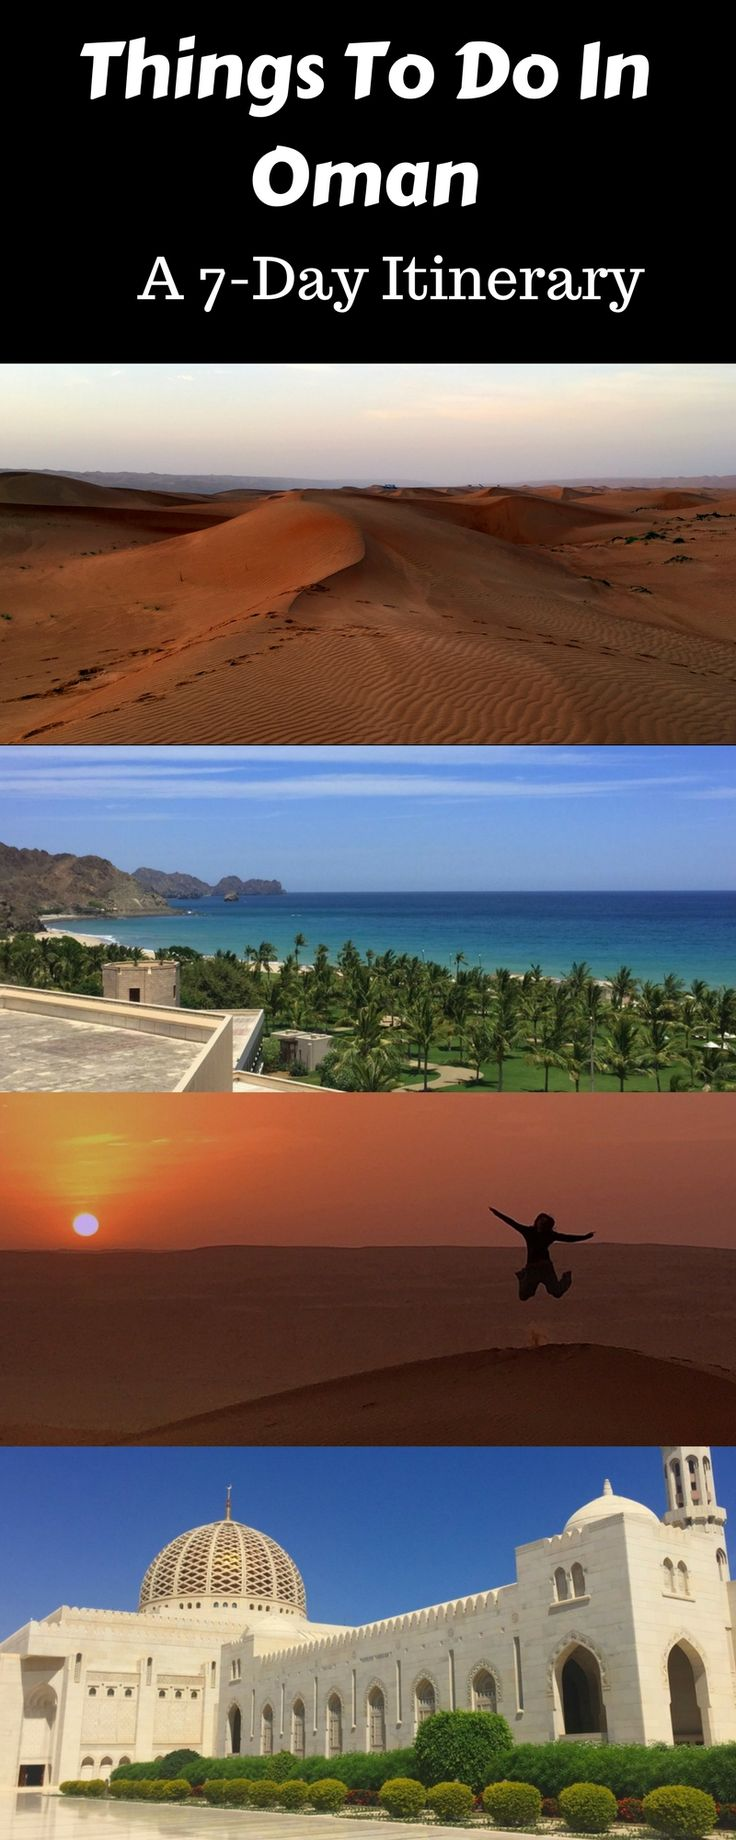 A comprehensive guide of things to do in Oman including info on fun activities, how to get to each one, what to wear, and more in Muscat, Sur, and beyond.